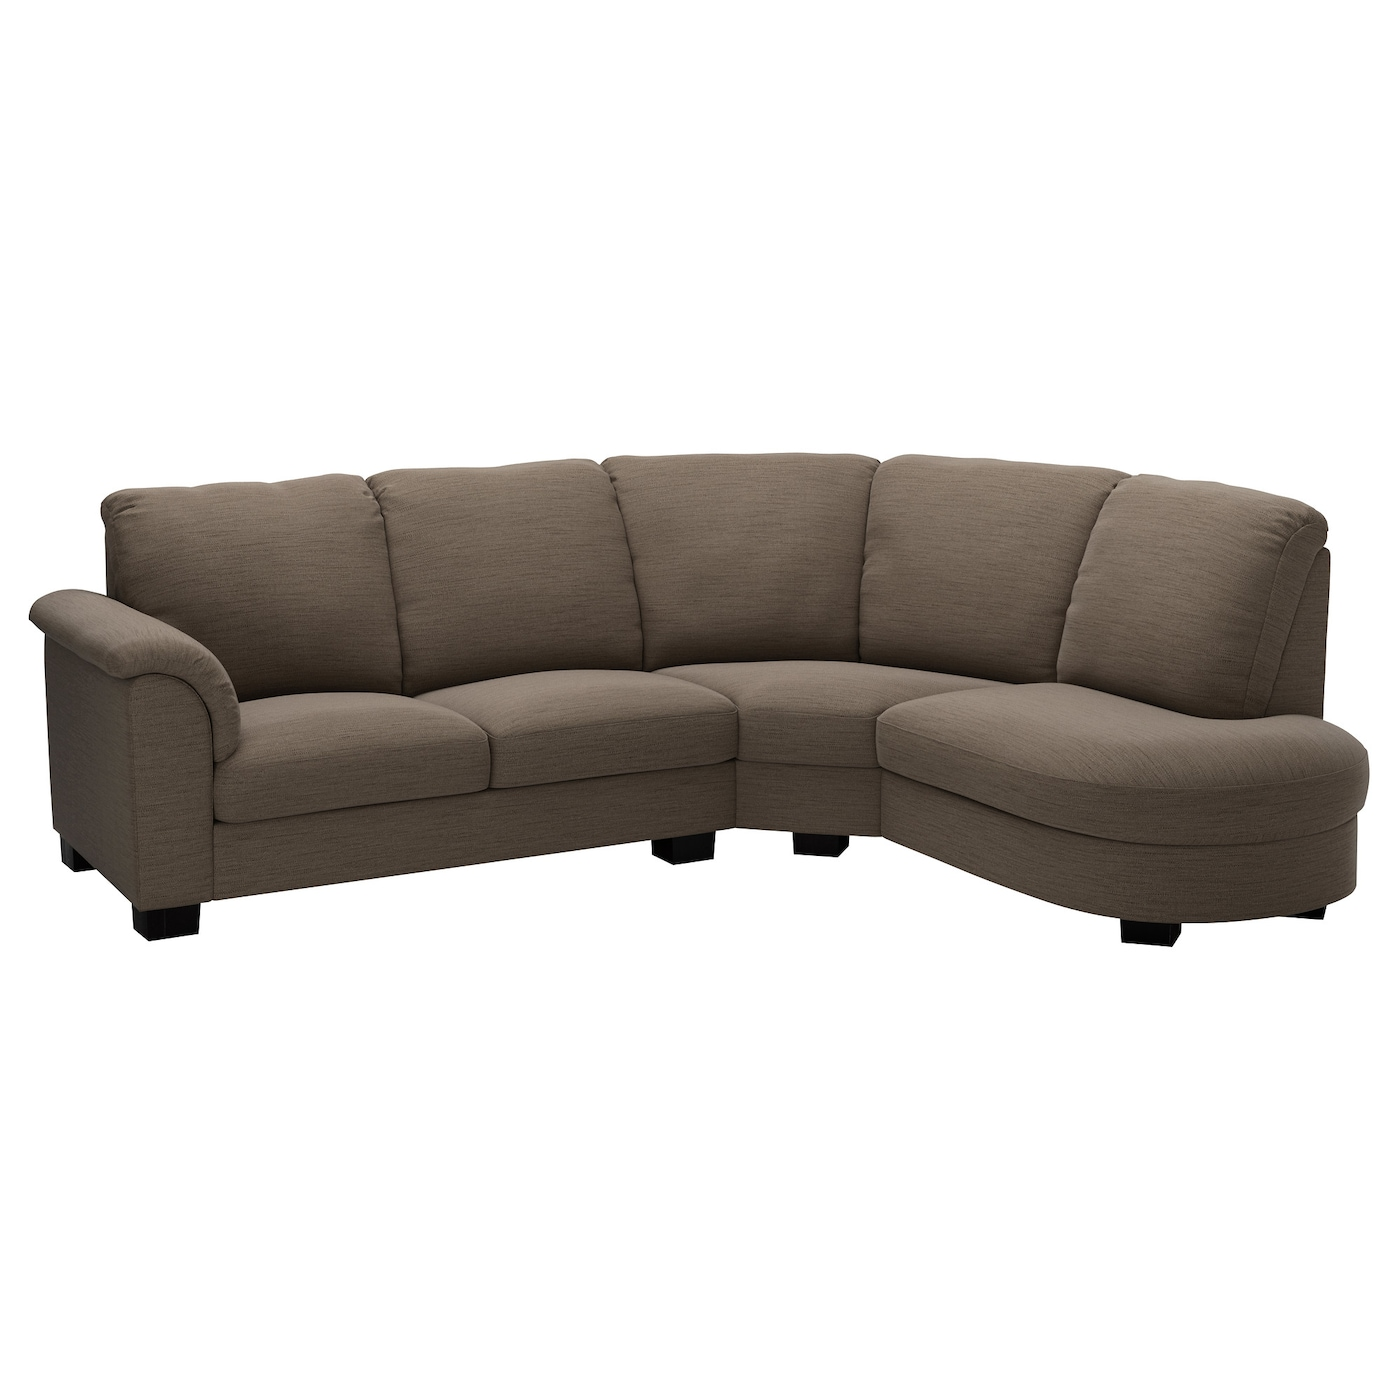 tidafors corner sofa with arm left hensta light brown ikea ForIkea Corner Sofa